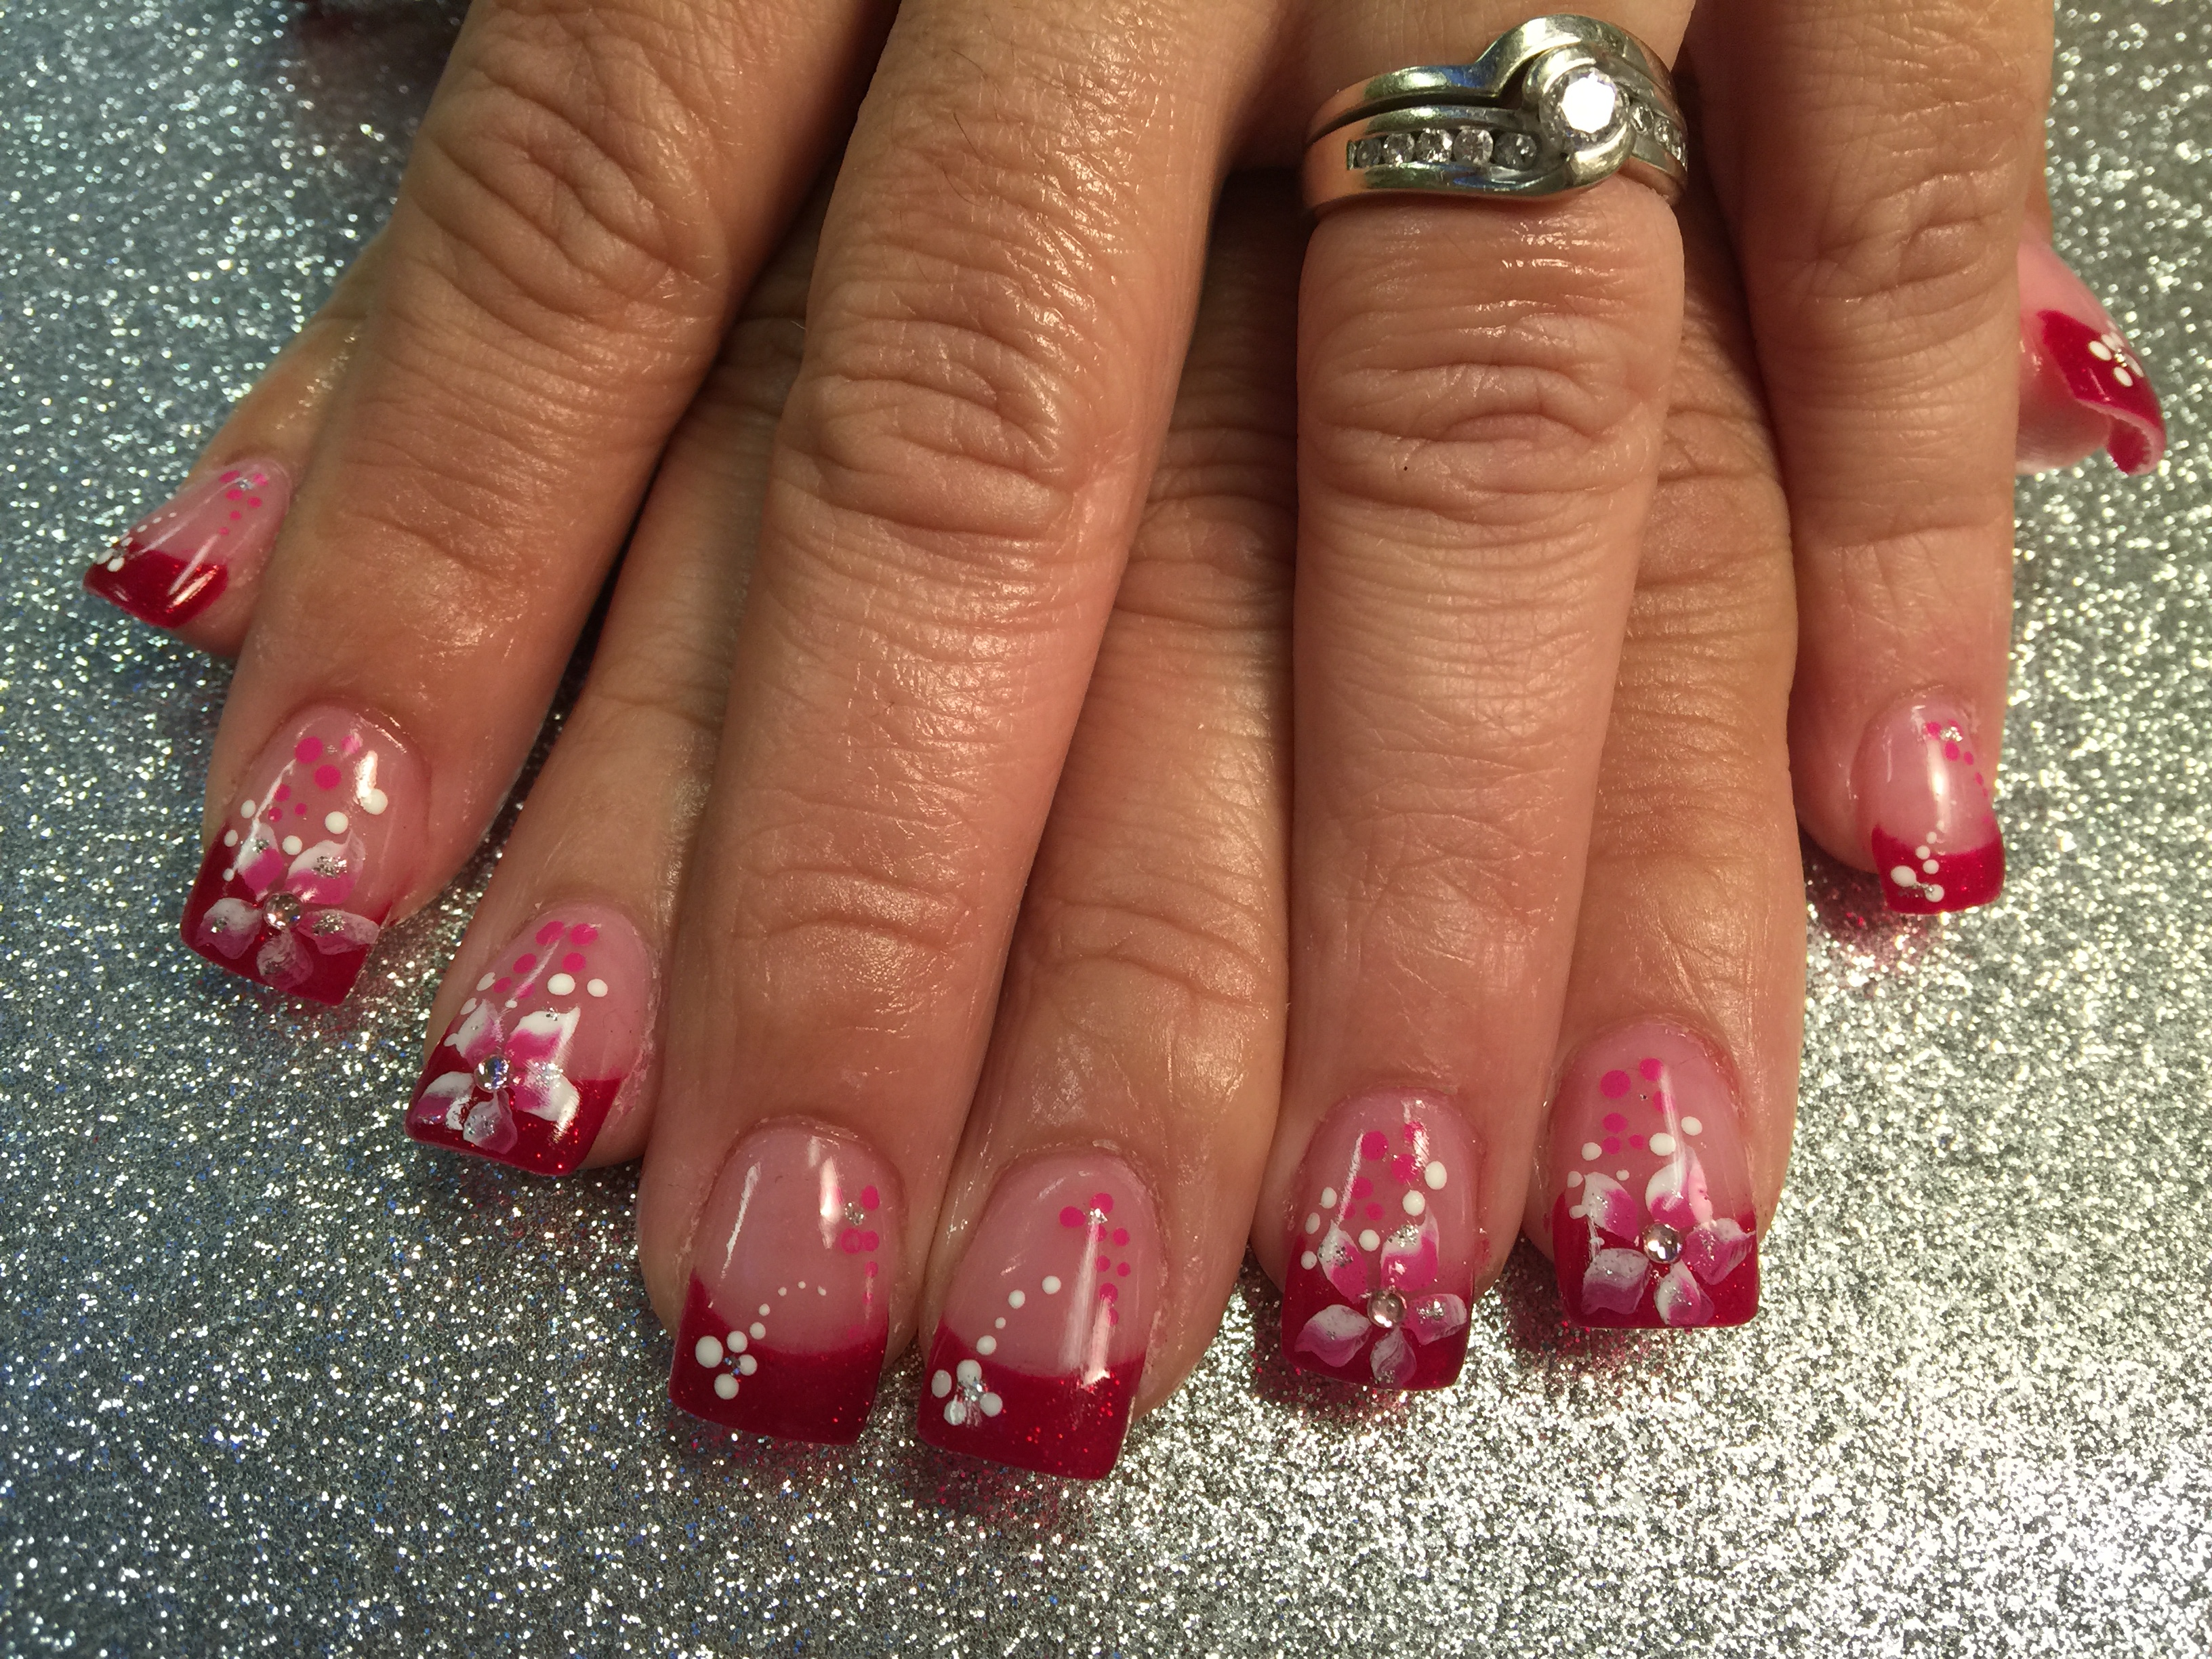 Lovely stargazer lily nail art designs by top nails clarksville tn lovely stargazer lily nail art designs by top nails clarksville tn izmirmasajfo